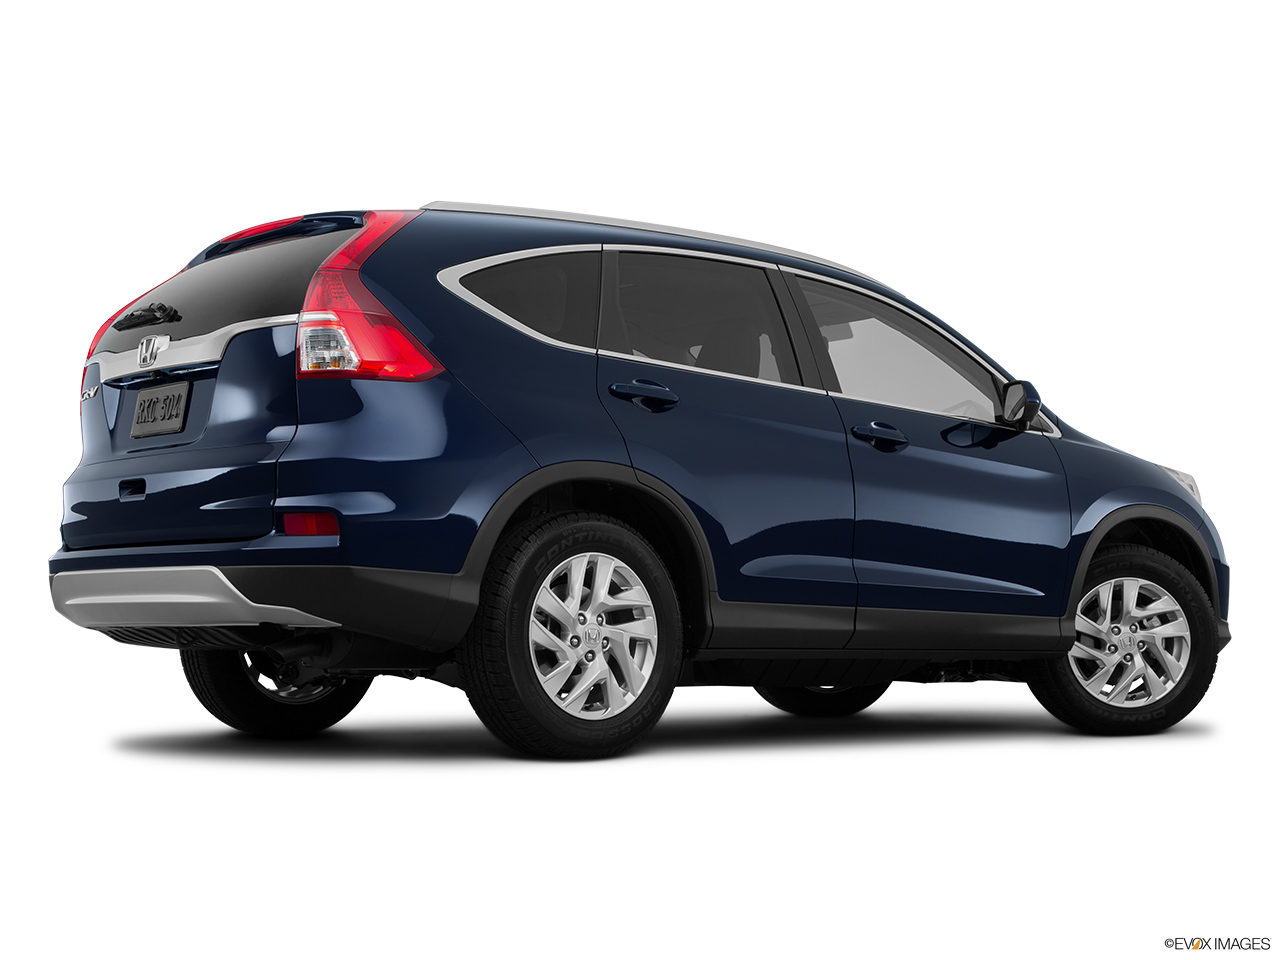 Car pictures list for honda crv 2016 2 4 ex l qatar for Honda crv competitors